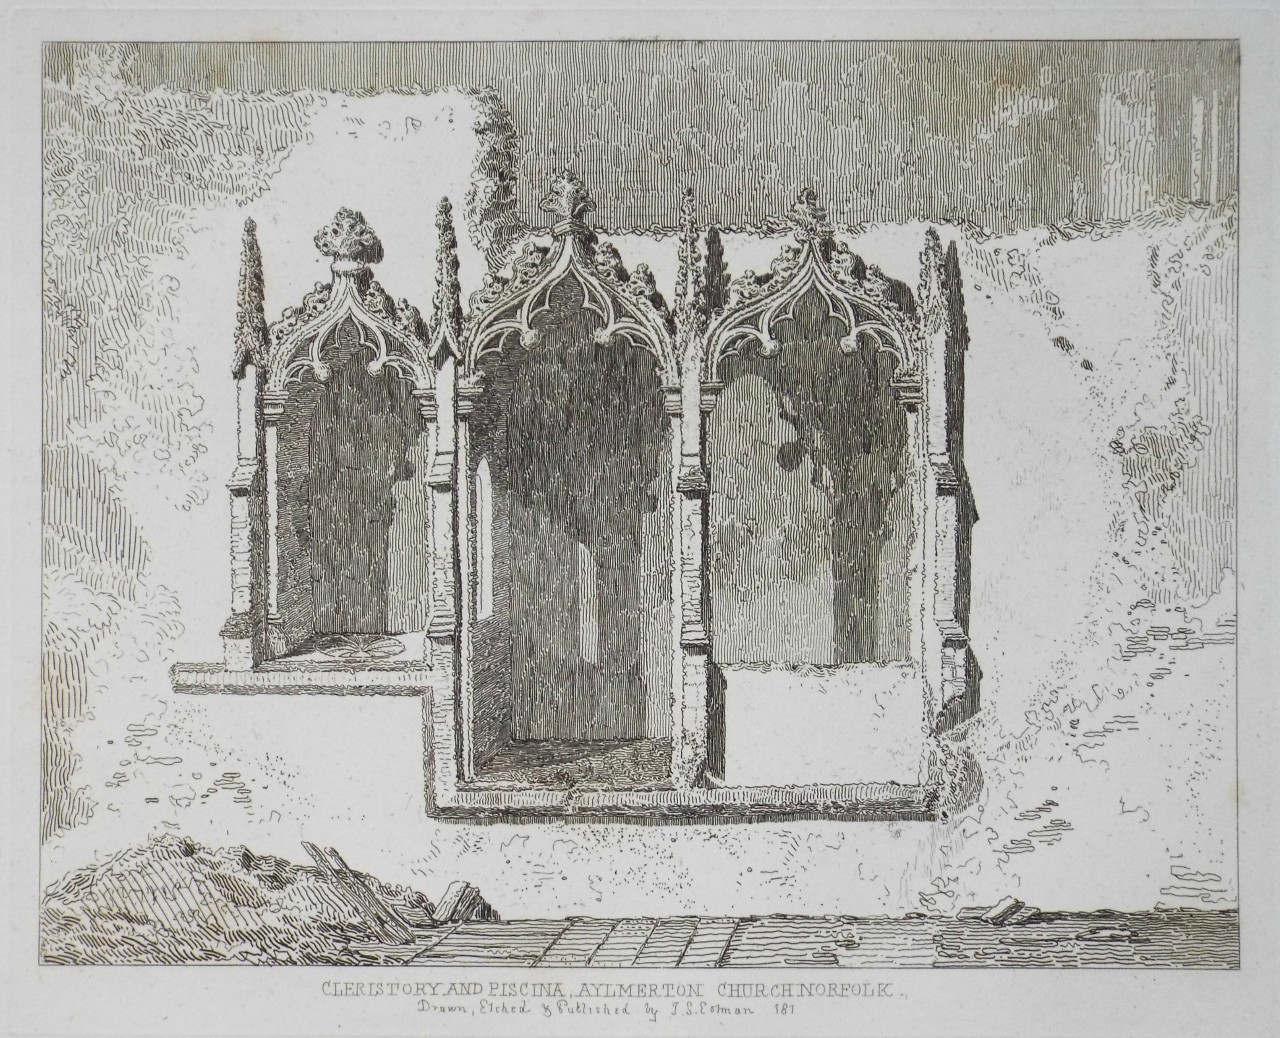 Etching - Cleristory and Piscina, Aylmerton Church Norfolk - Cotman